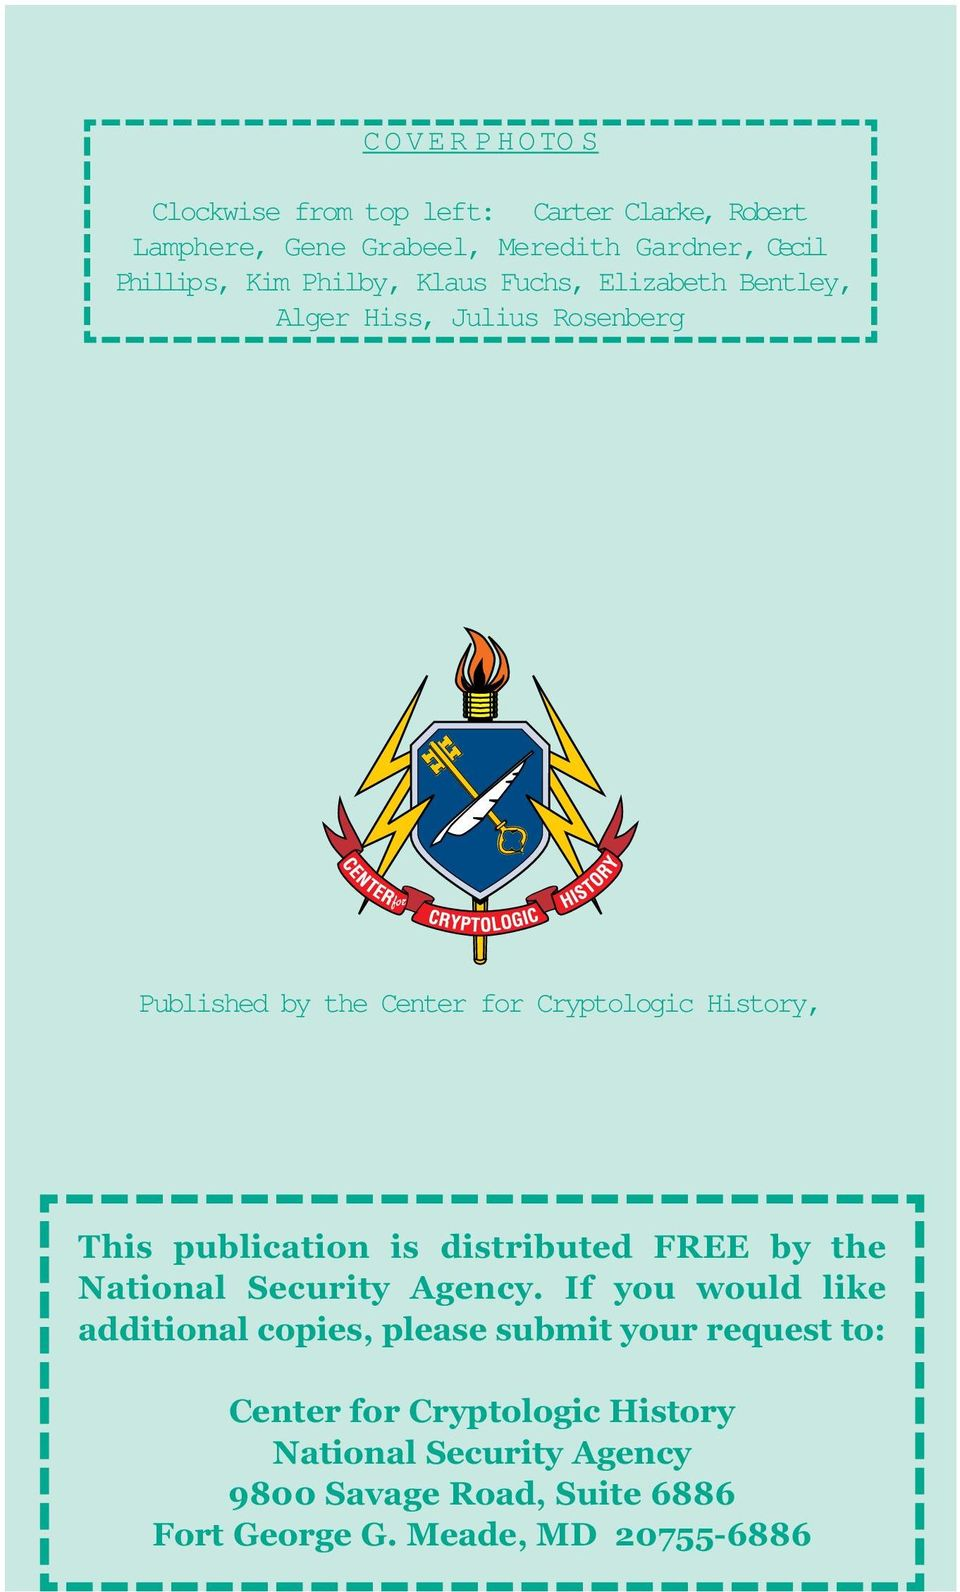 publication is distributed FREE by the National Security Agency.